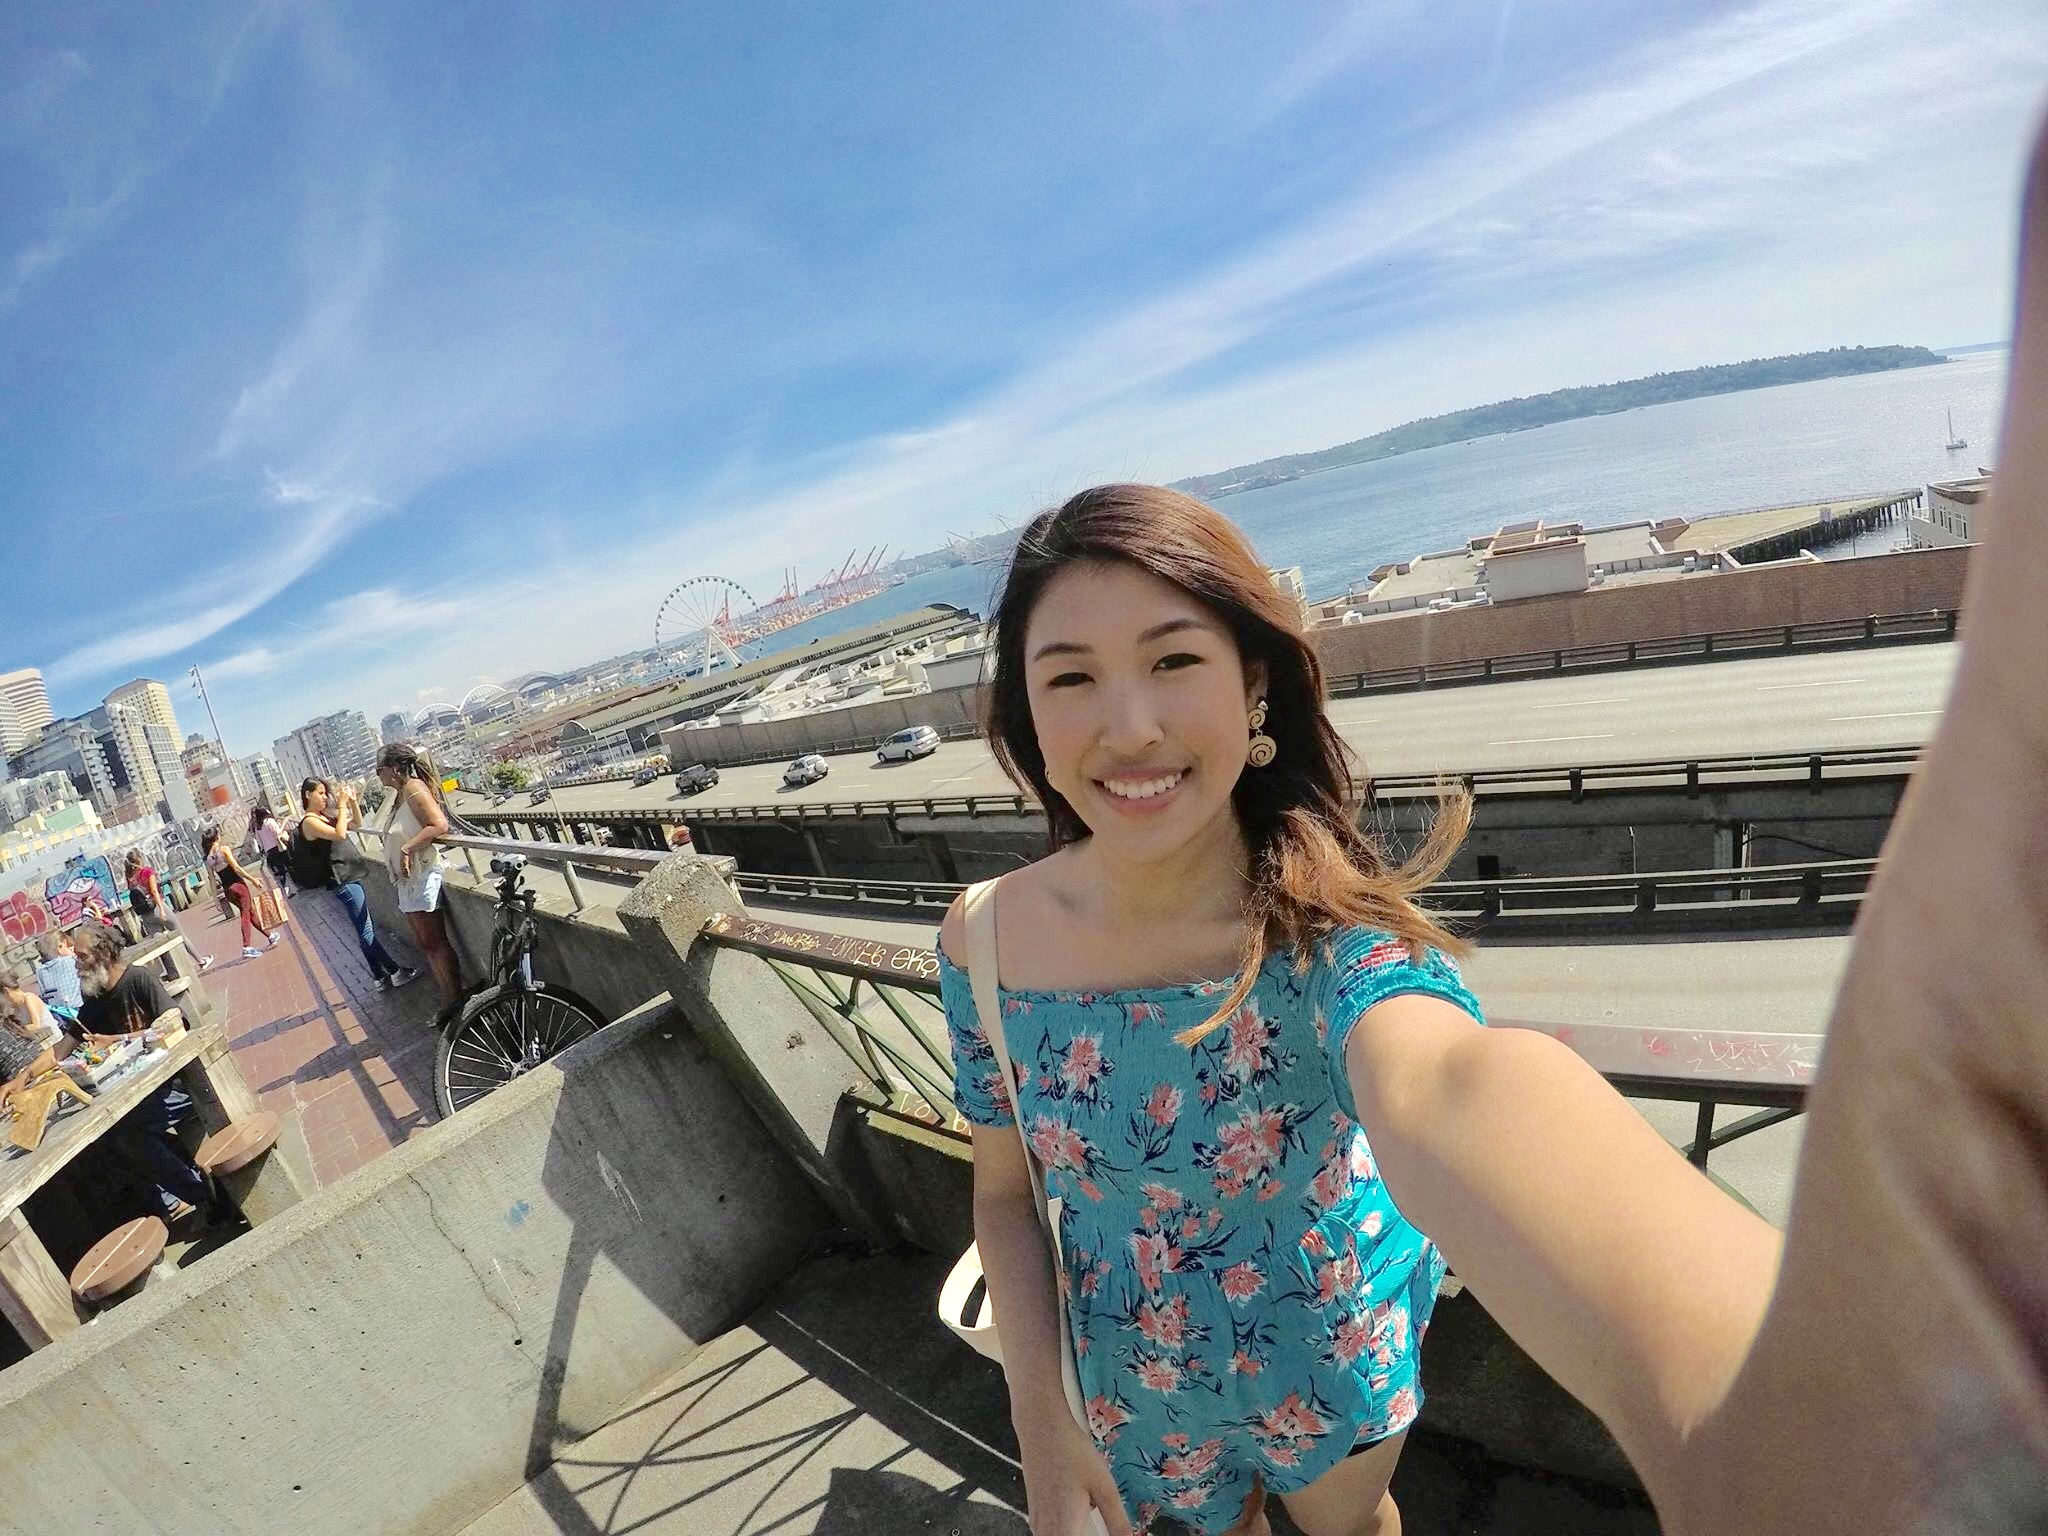 A Go-Pro picture with the beautiful views of Seattle!